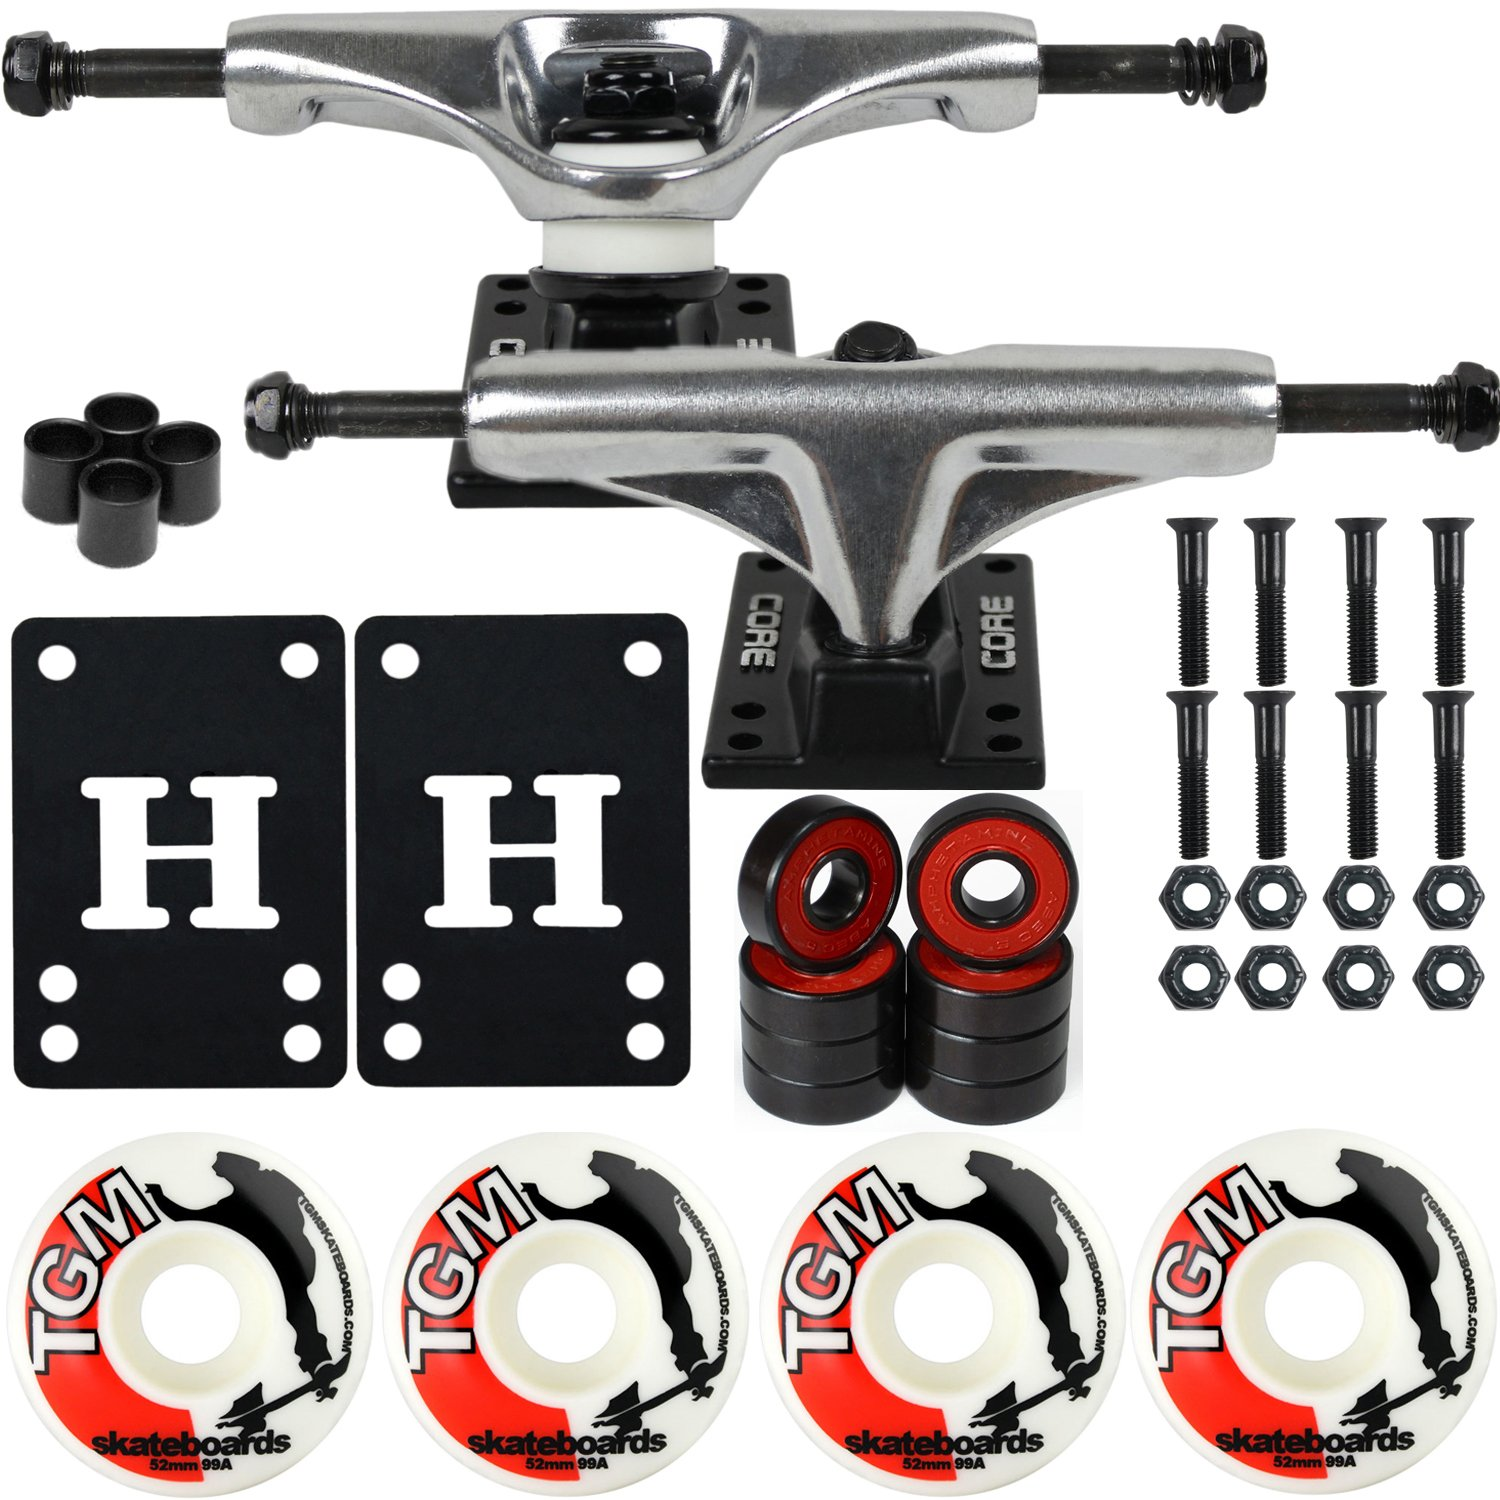 CORE Skateboard Package 5.0'' Trucks 52mm with White Wheels + Components (Silver Hanger/Black Base) by CORE